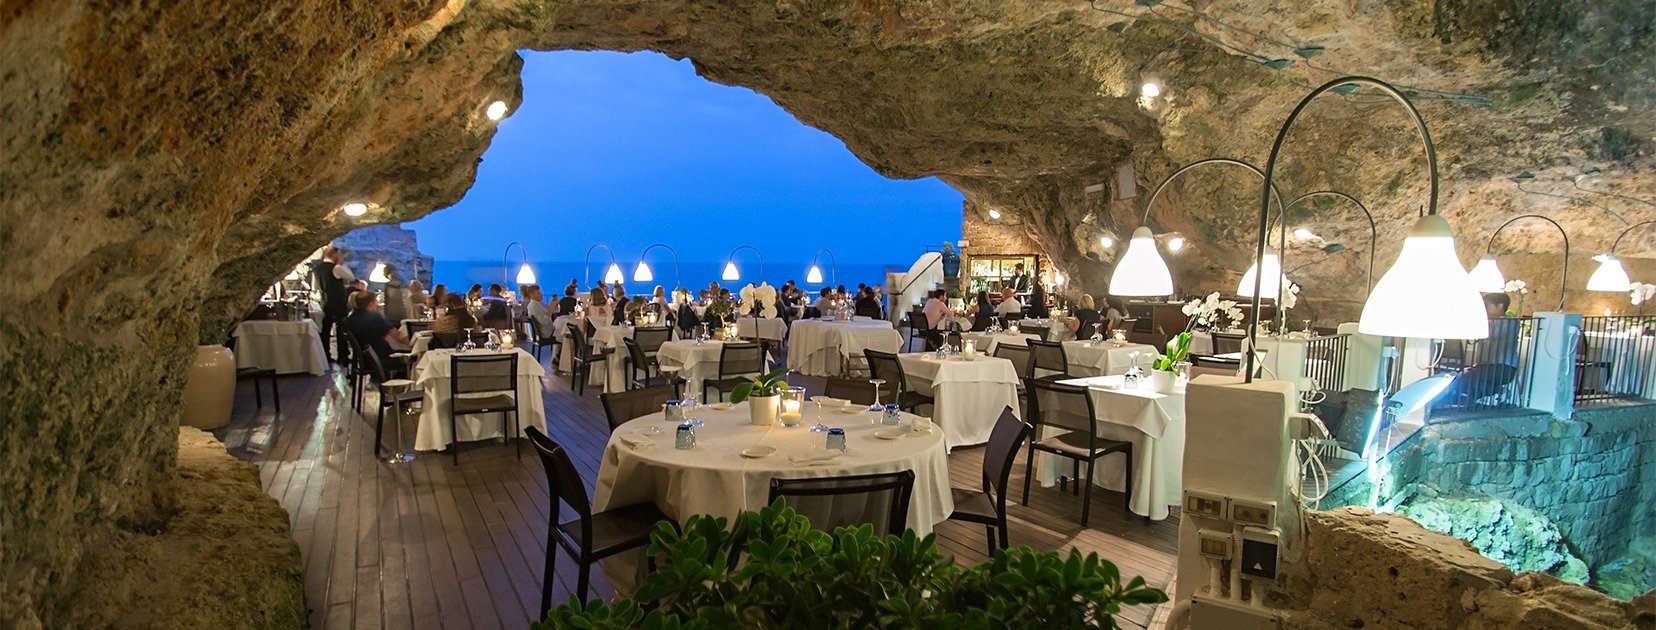 Image Credit: Facebook/Grotta Palazzese